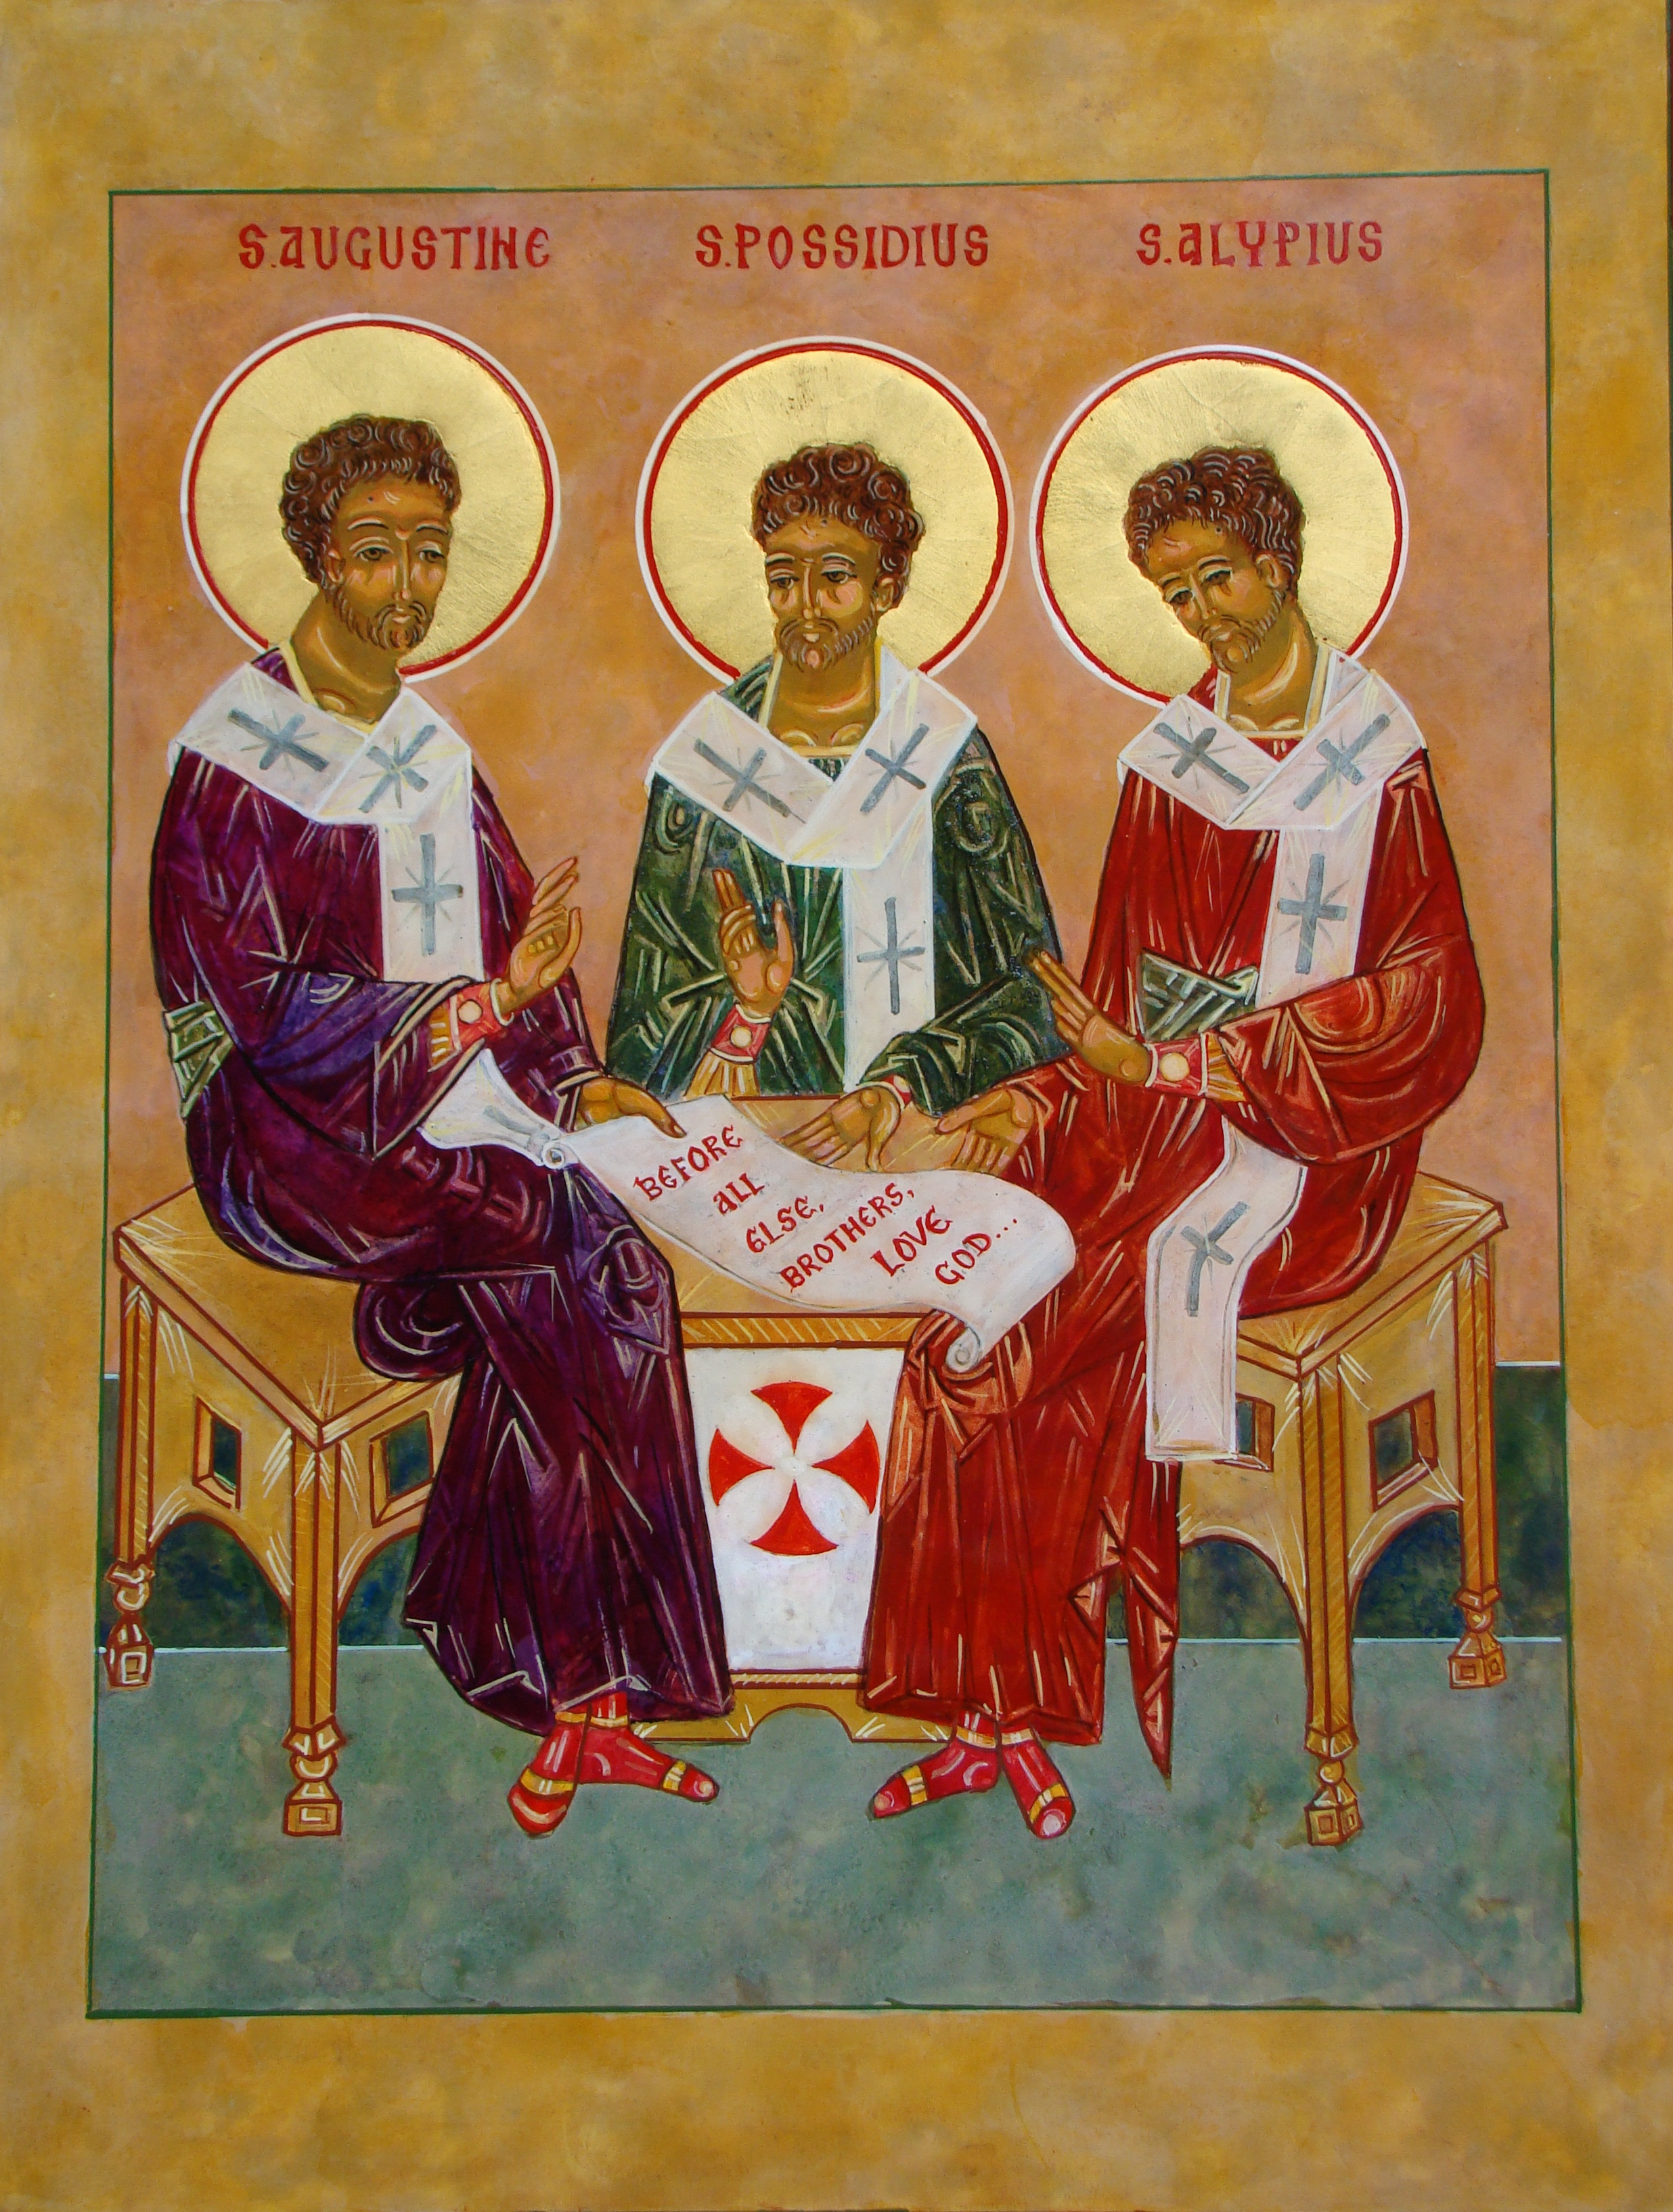 The Rev. Rich Cannuli, O.S.A., painted this icon of St. Augustine with his two friends, Sts. Possidius and Alypius, specifically for the solemn profession of vows for the Rev. Rich Young, O.S.A., on May 16, 2014